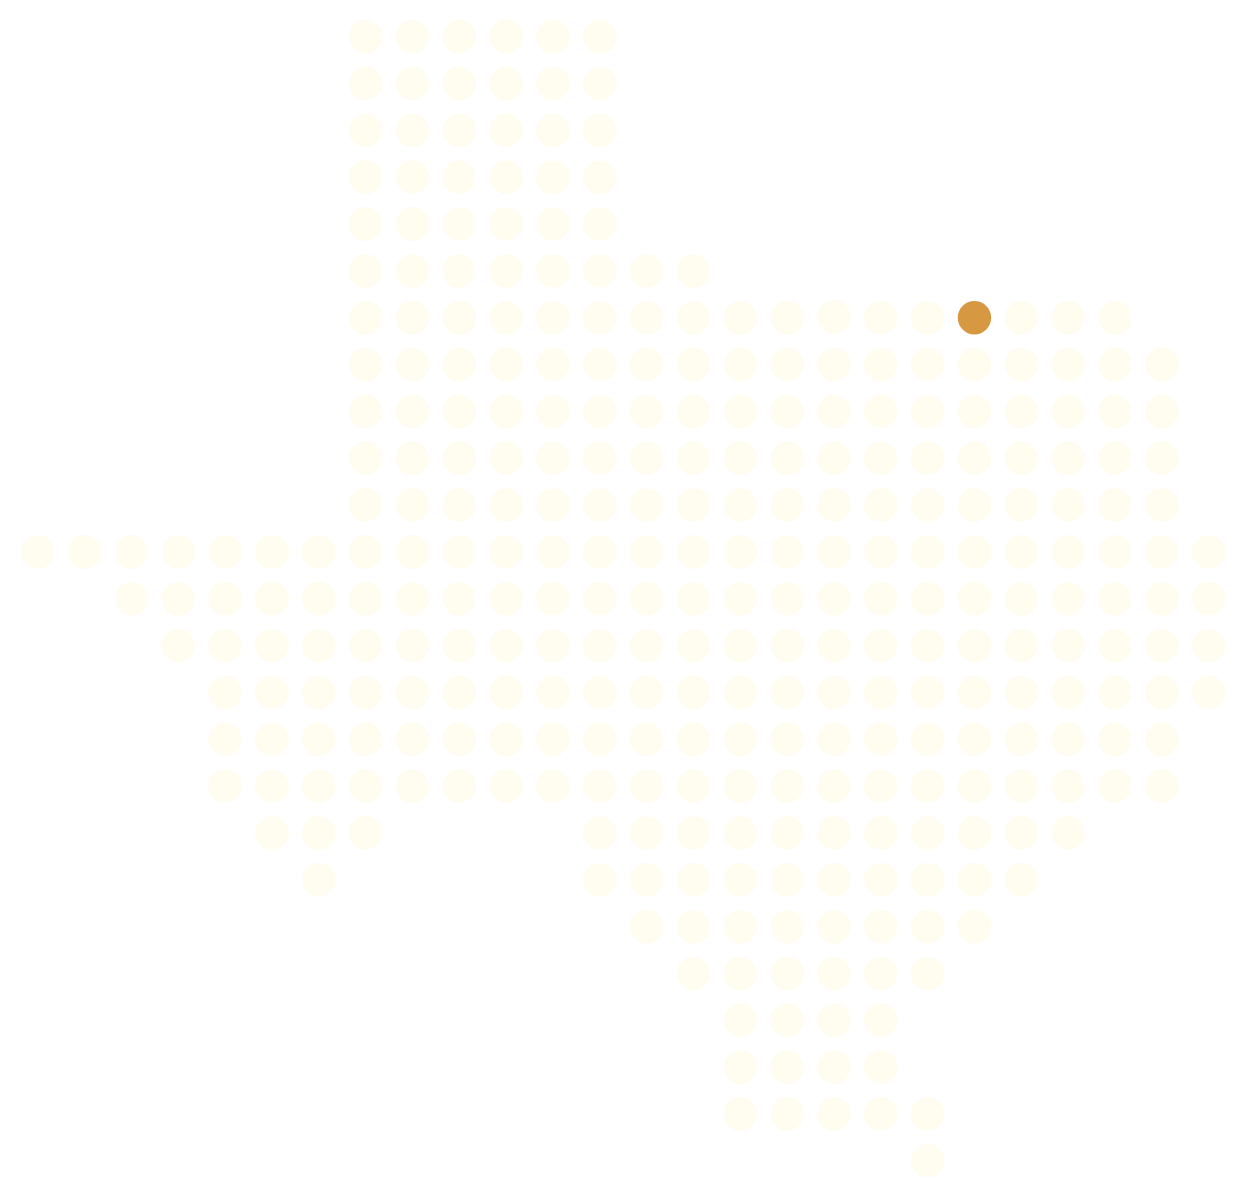 north-texas-service-areas-fannin-white.png